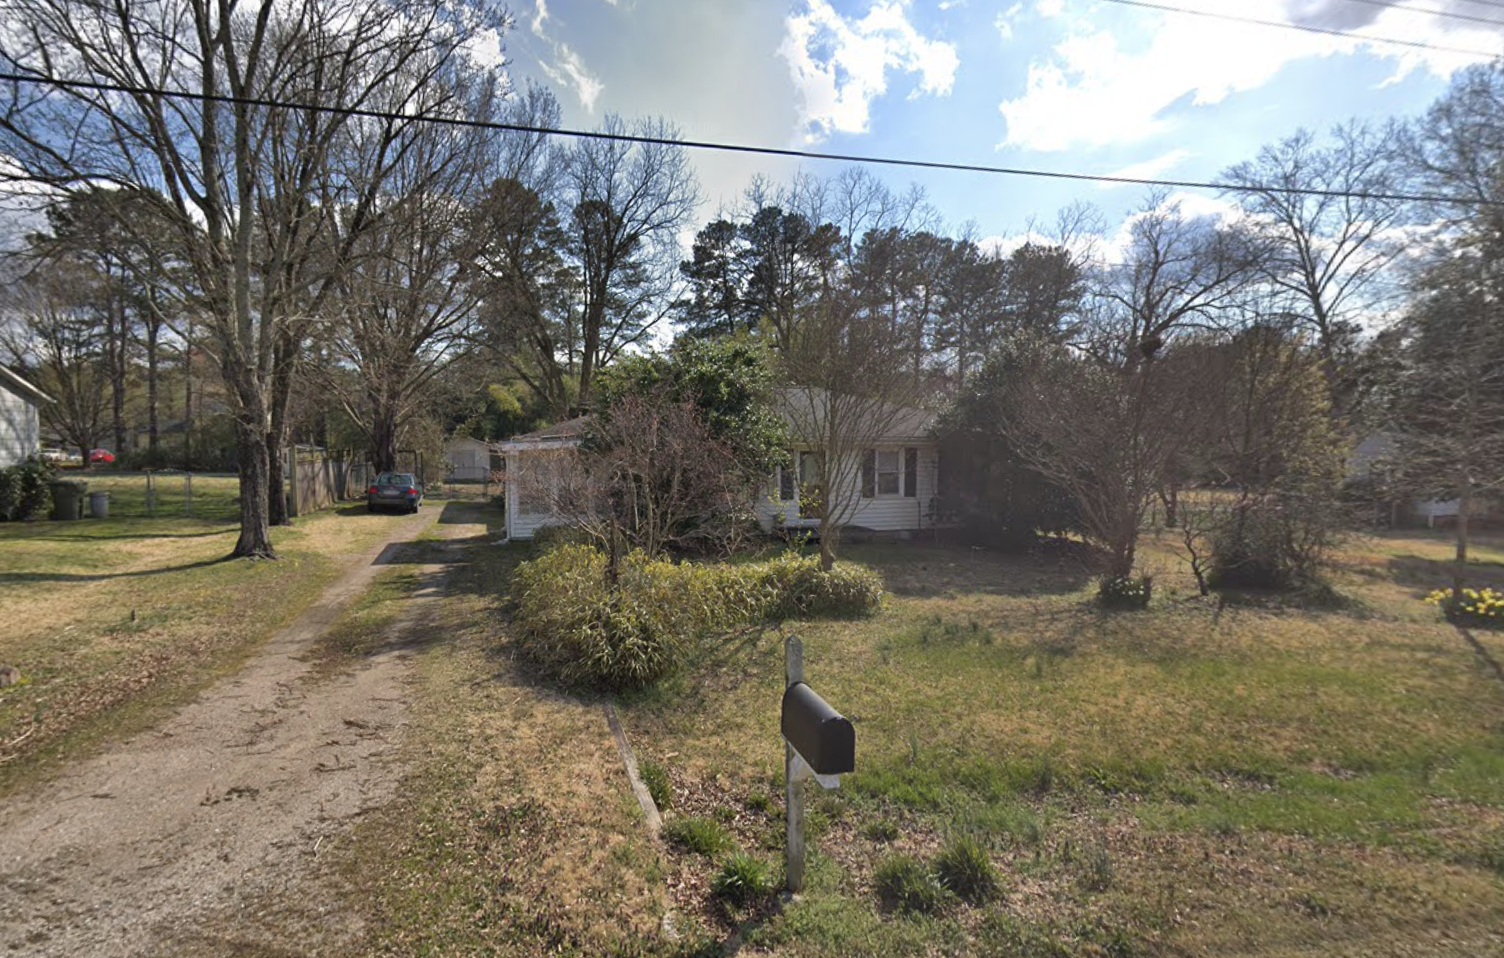 Investment property available in Raleigh NC